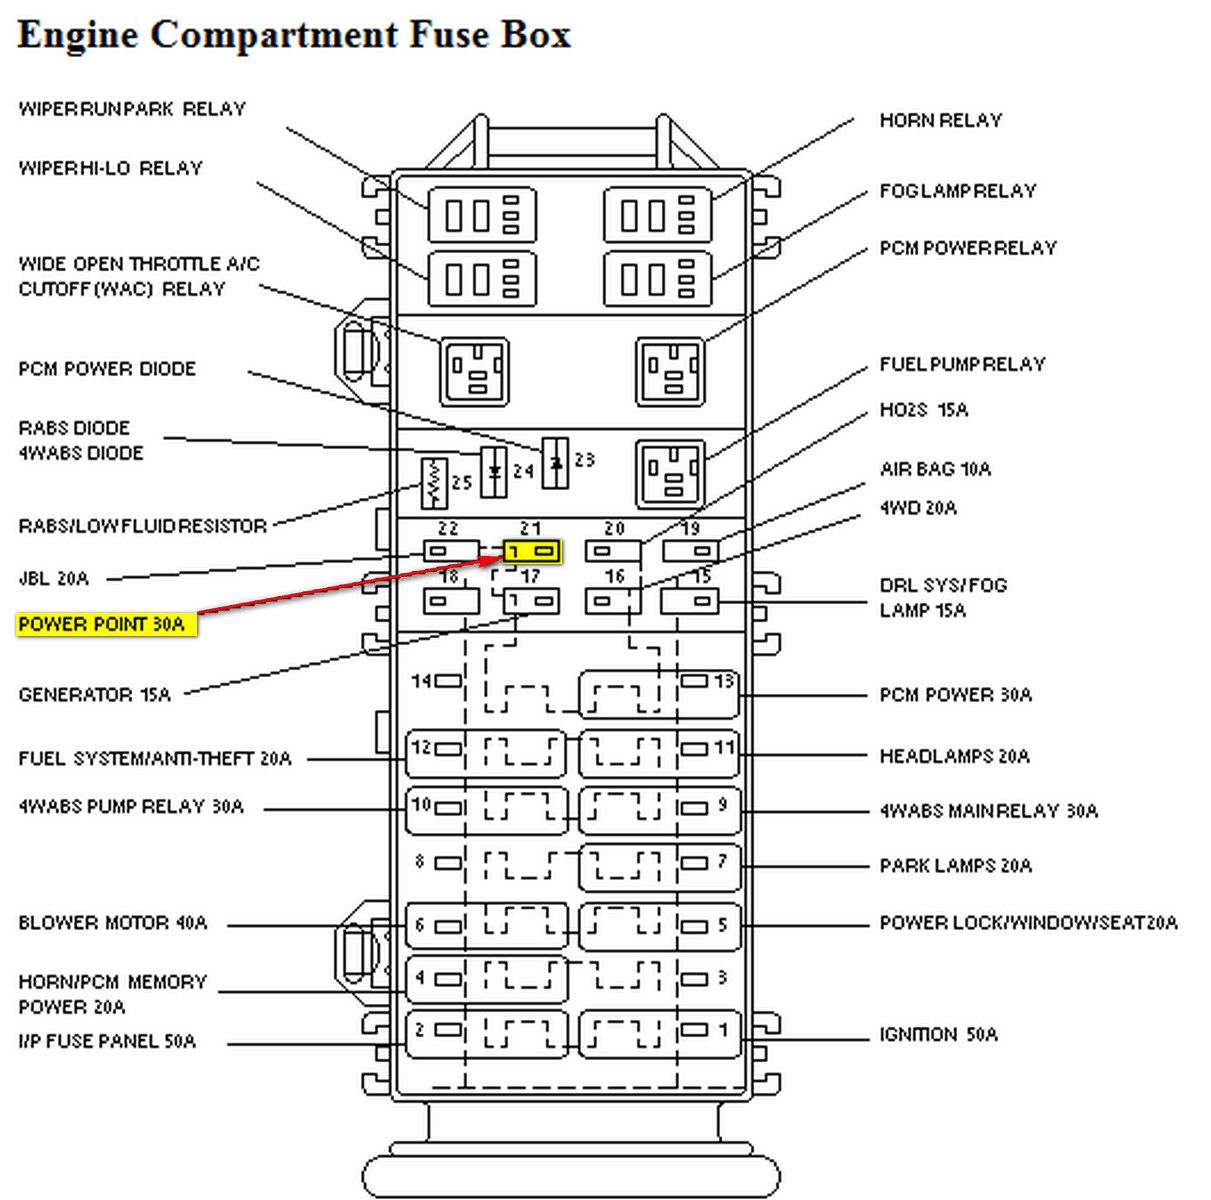 8a55967da7ae1bd251b795845886bd24 2002 ford ranger fuse diagram 1997 ford ranger fuse box diagram 2012 ford edge fuse box diagram at metegol.co